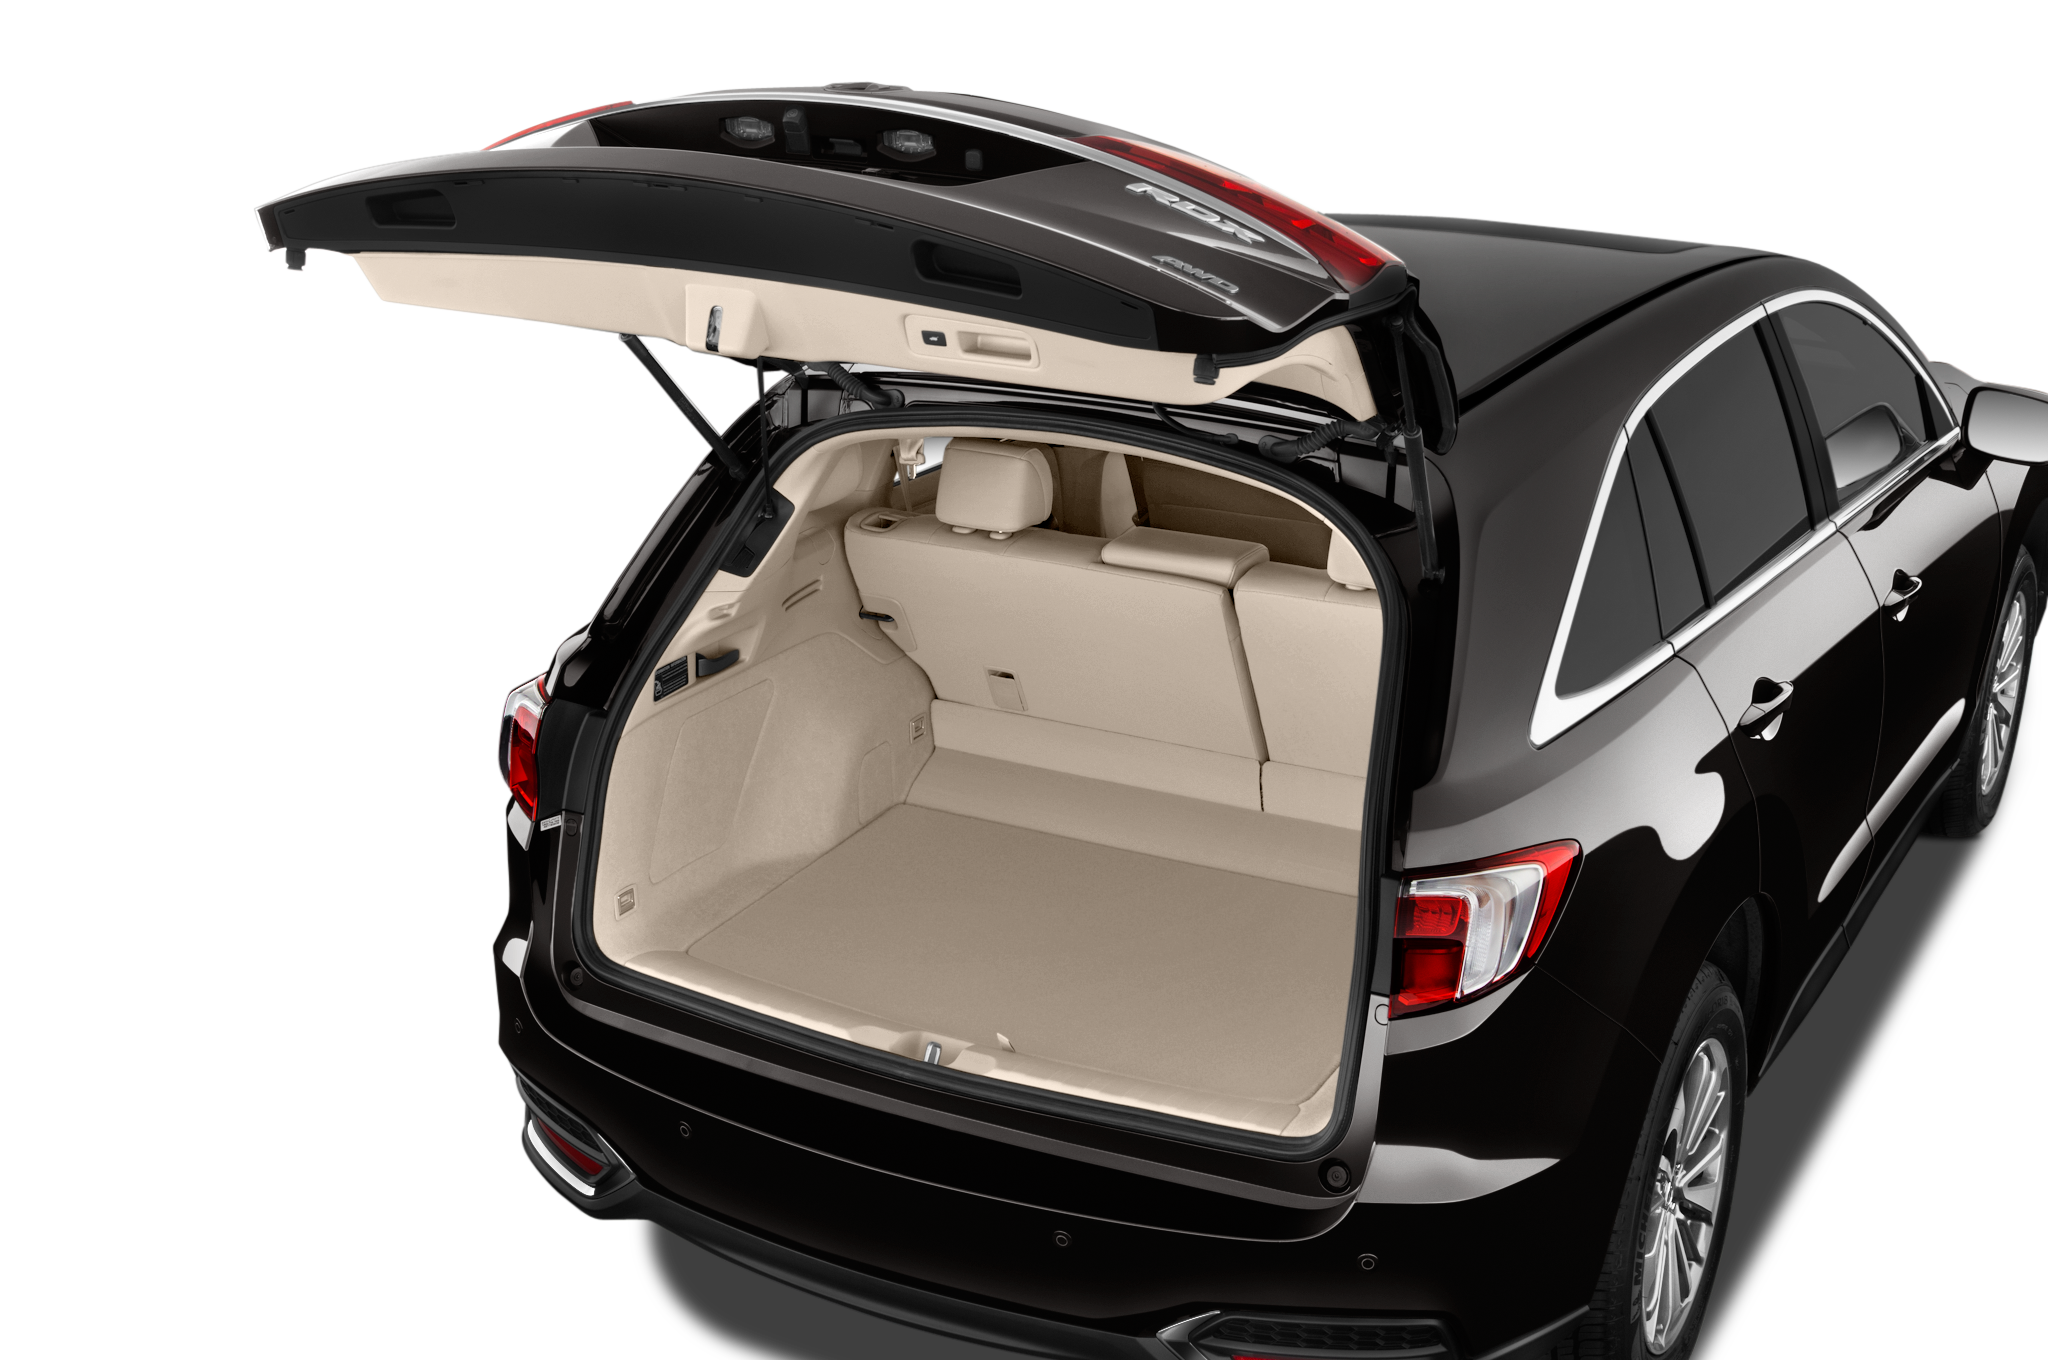 Refreshed 2016 Acura Rdx Price Rises New Advance Package Available 2017 Mdx Folding Cargo